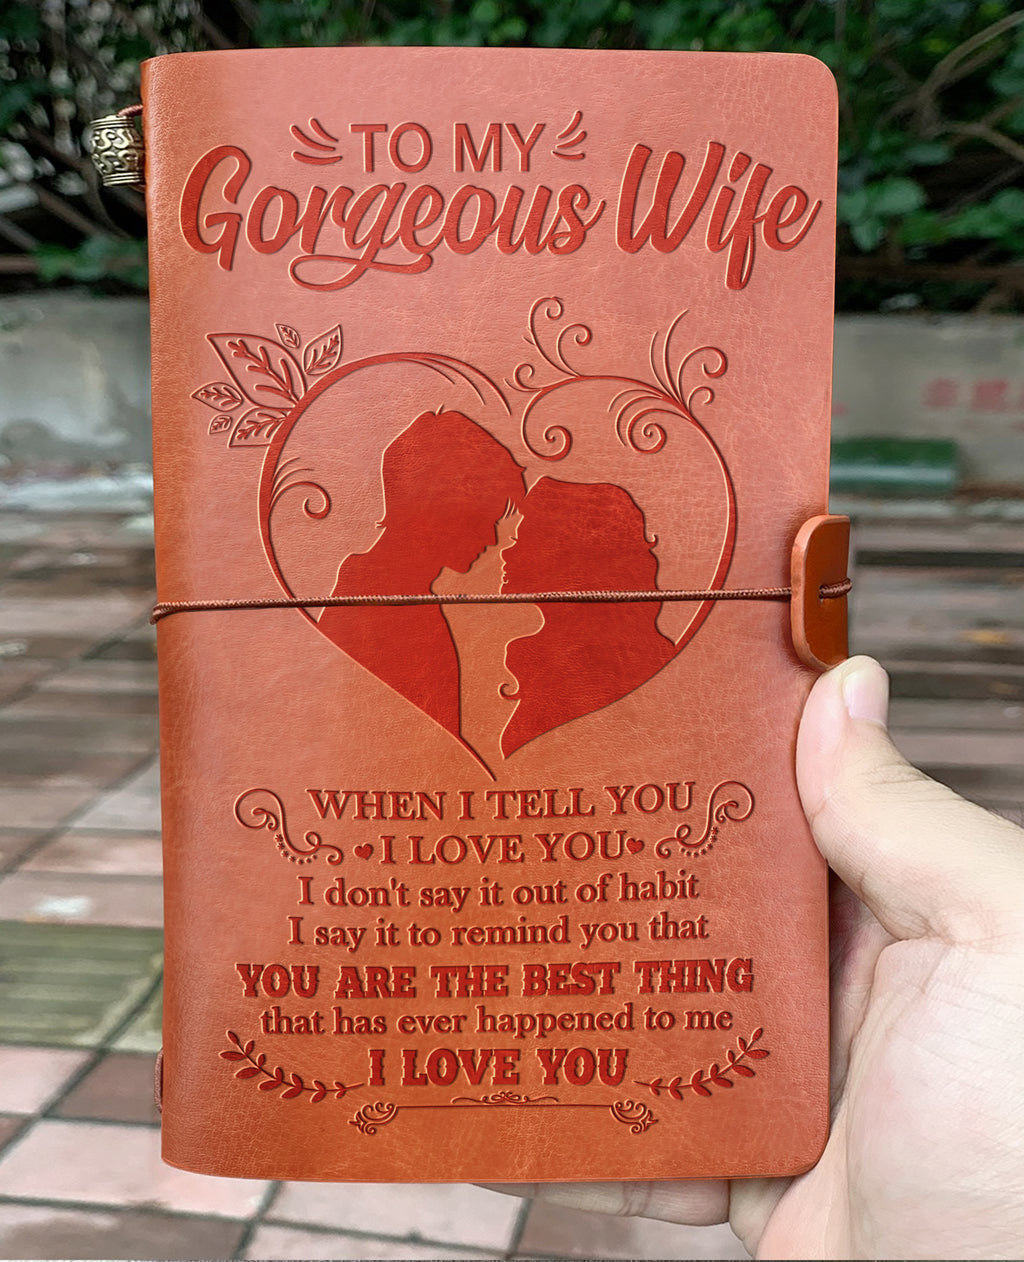 To my wife - WHEN I TELL YOU I LOVE YOU - Vintage Journal